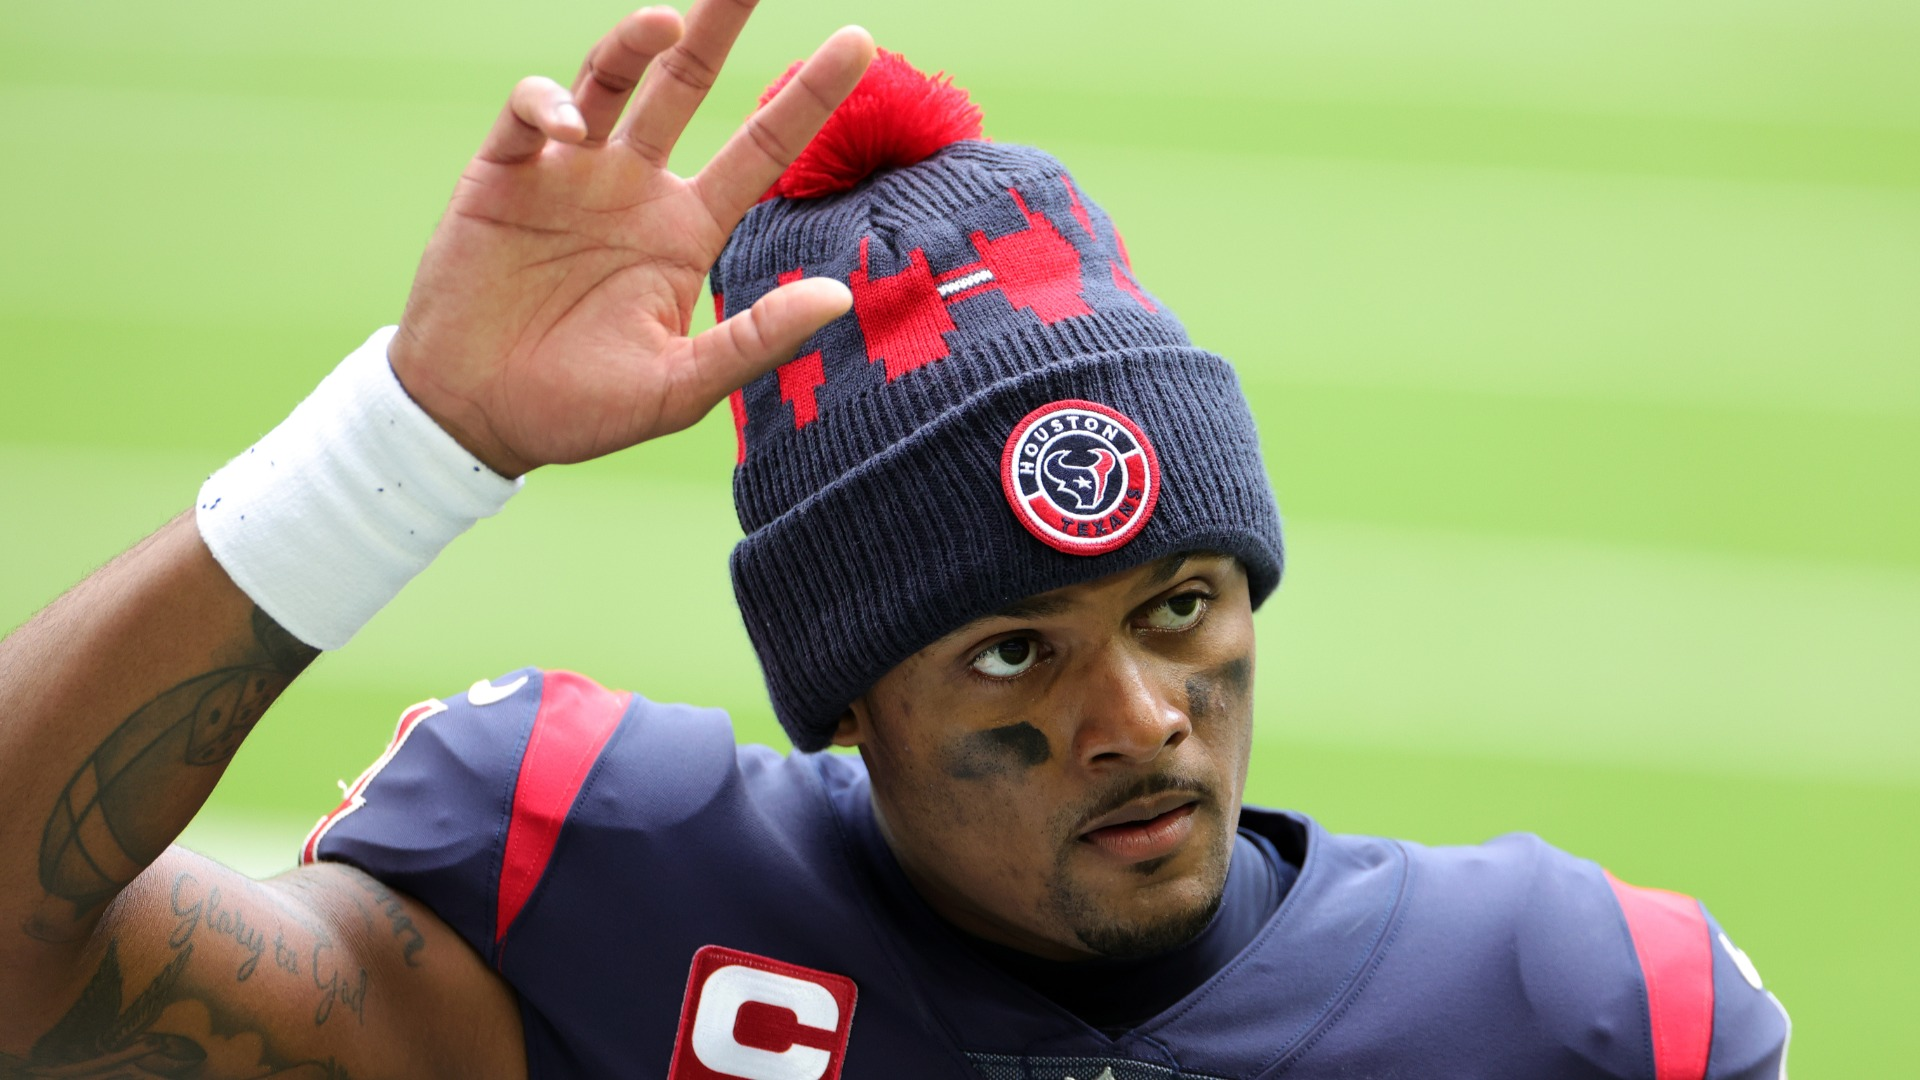 The Texans reportedly expect to trade Deshaun Watson and, given the global health crisis, the quarterback does not want fans to protest.